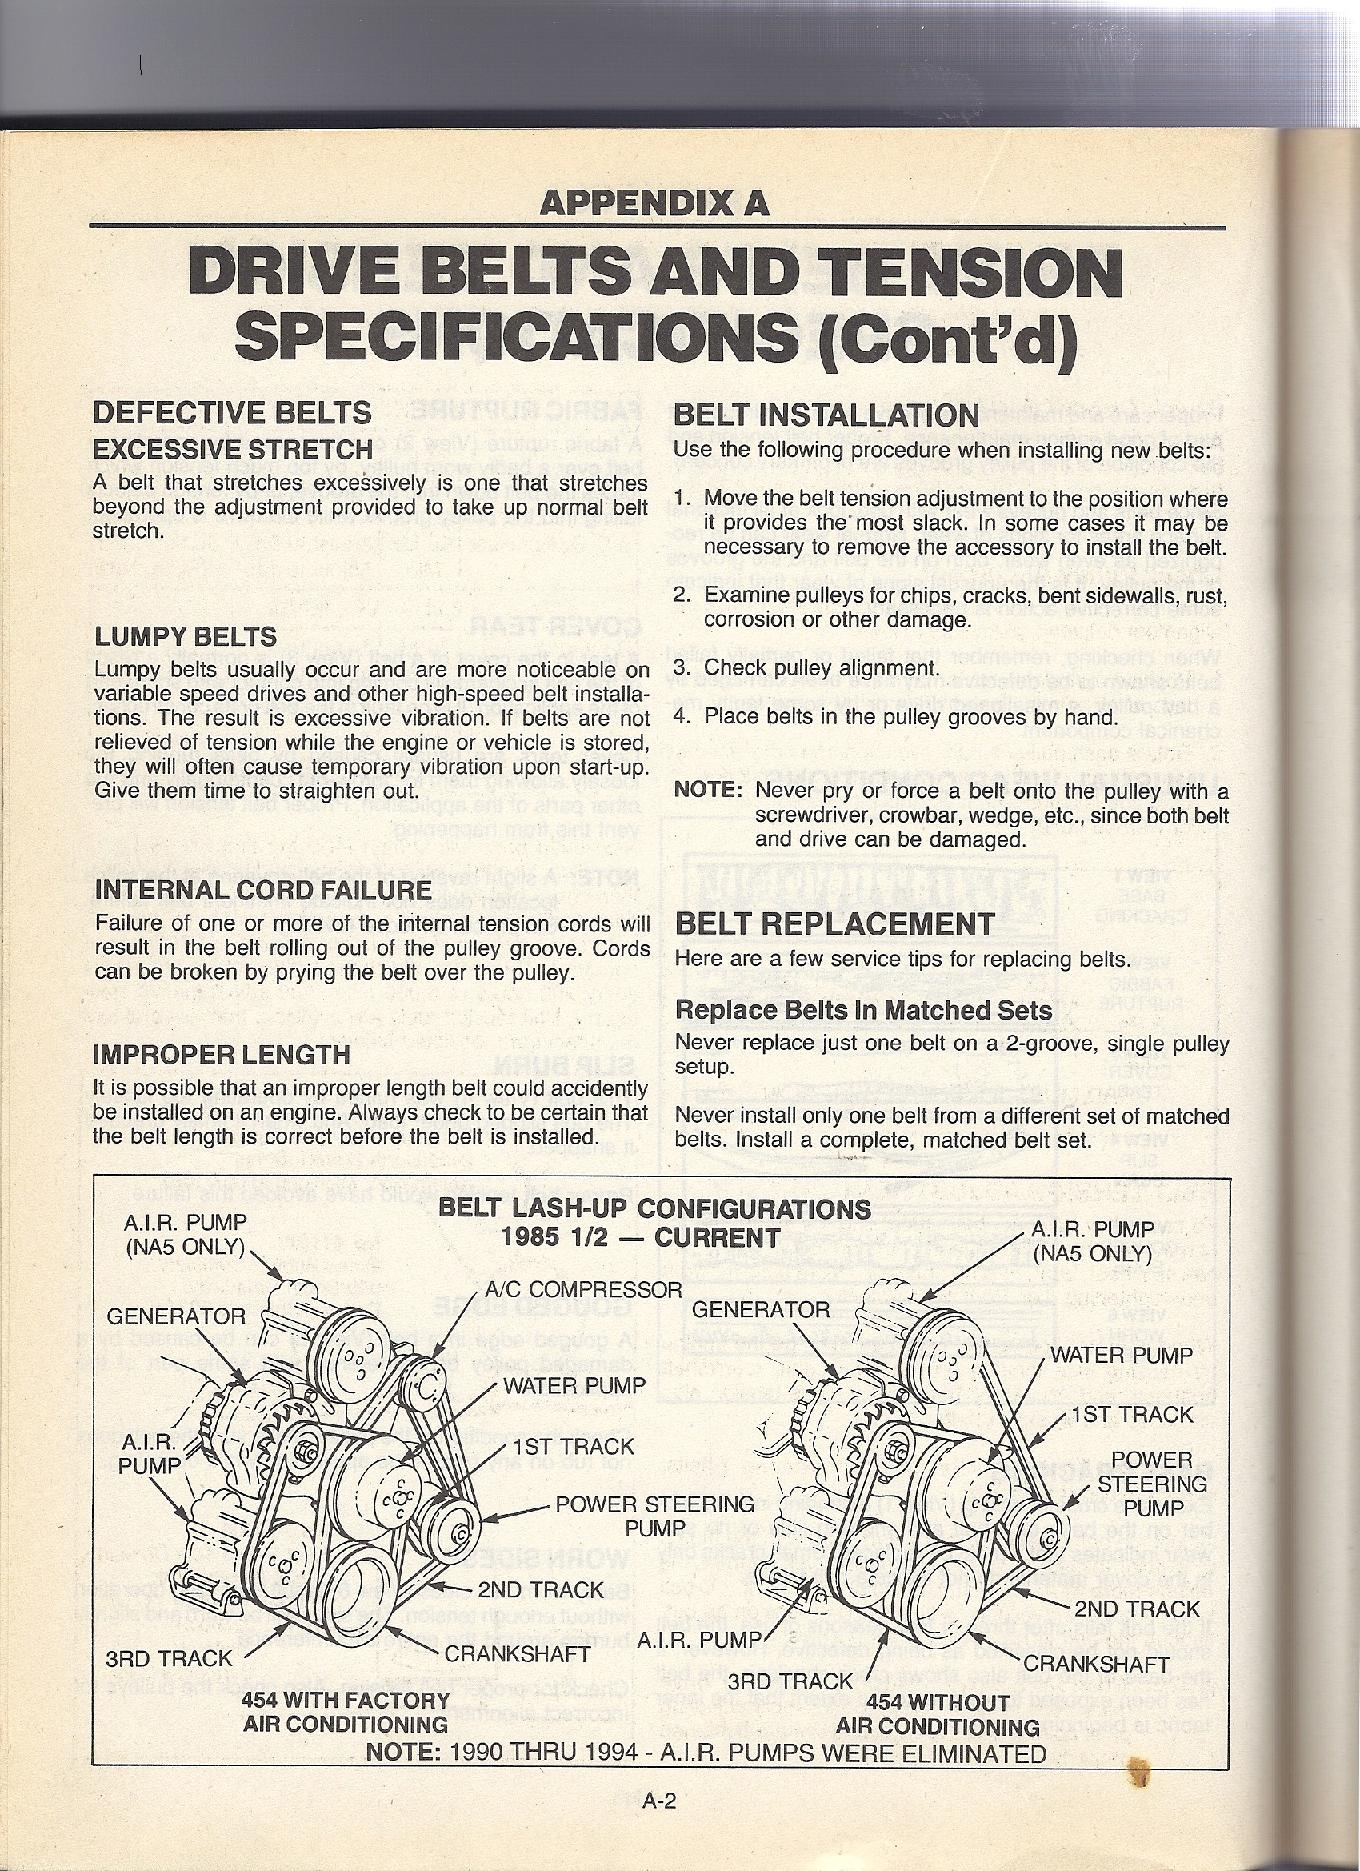 I Had To Take The Belts Off My 1985 Chevy 454 In Order Replace. Wiring. 454 Motorhome Engine Belt Diagram At Scoala.co